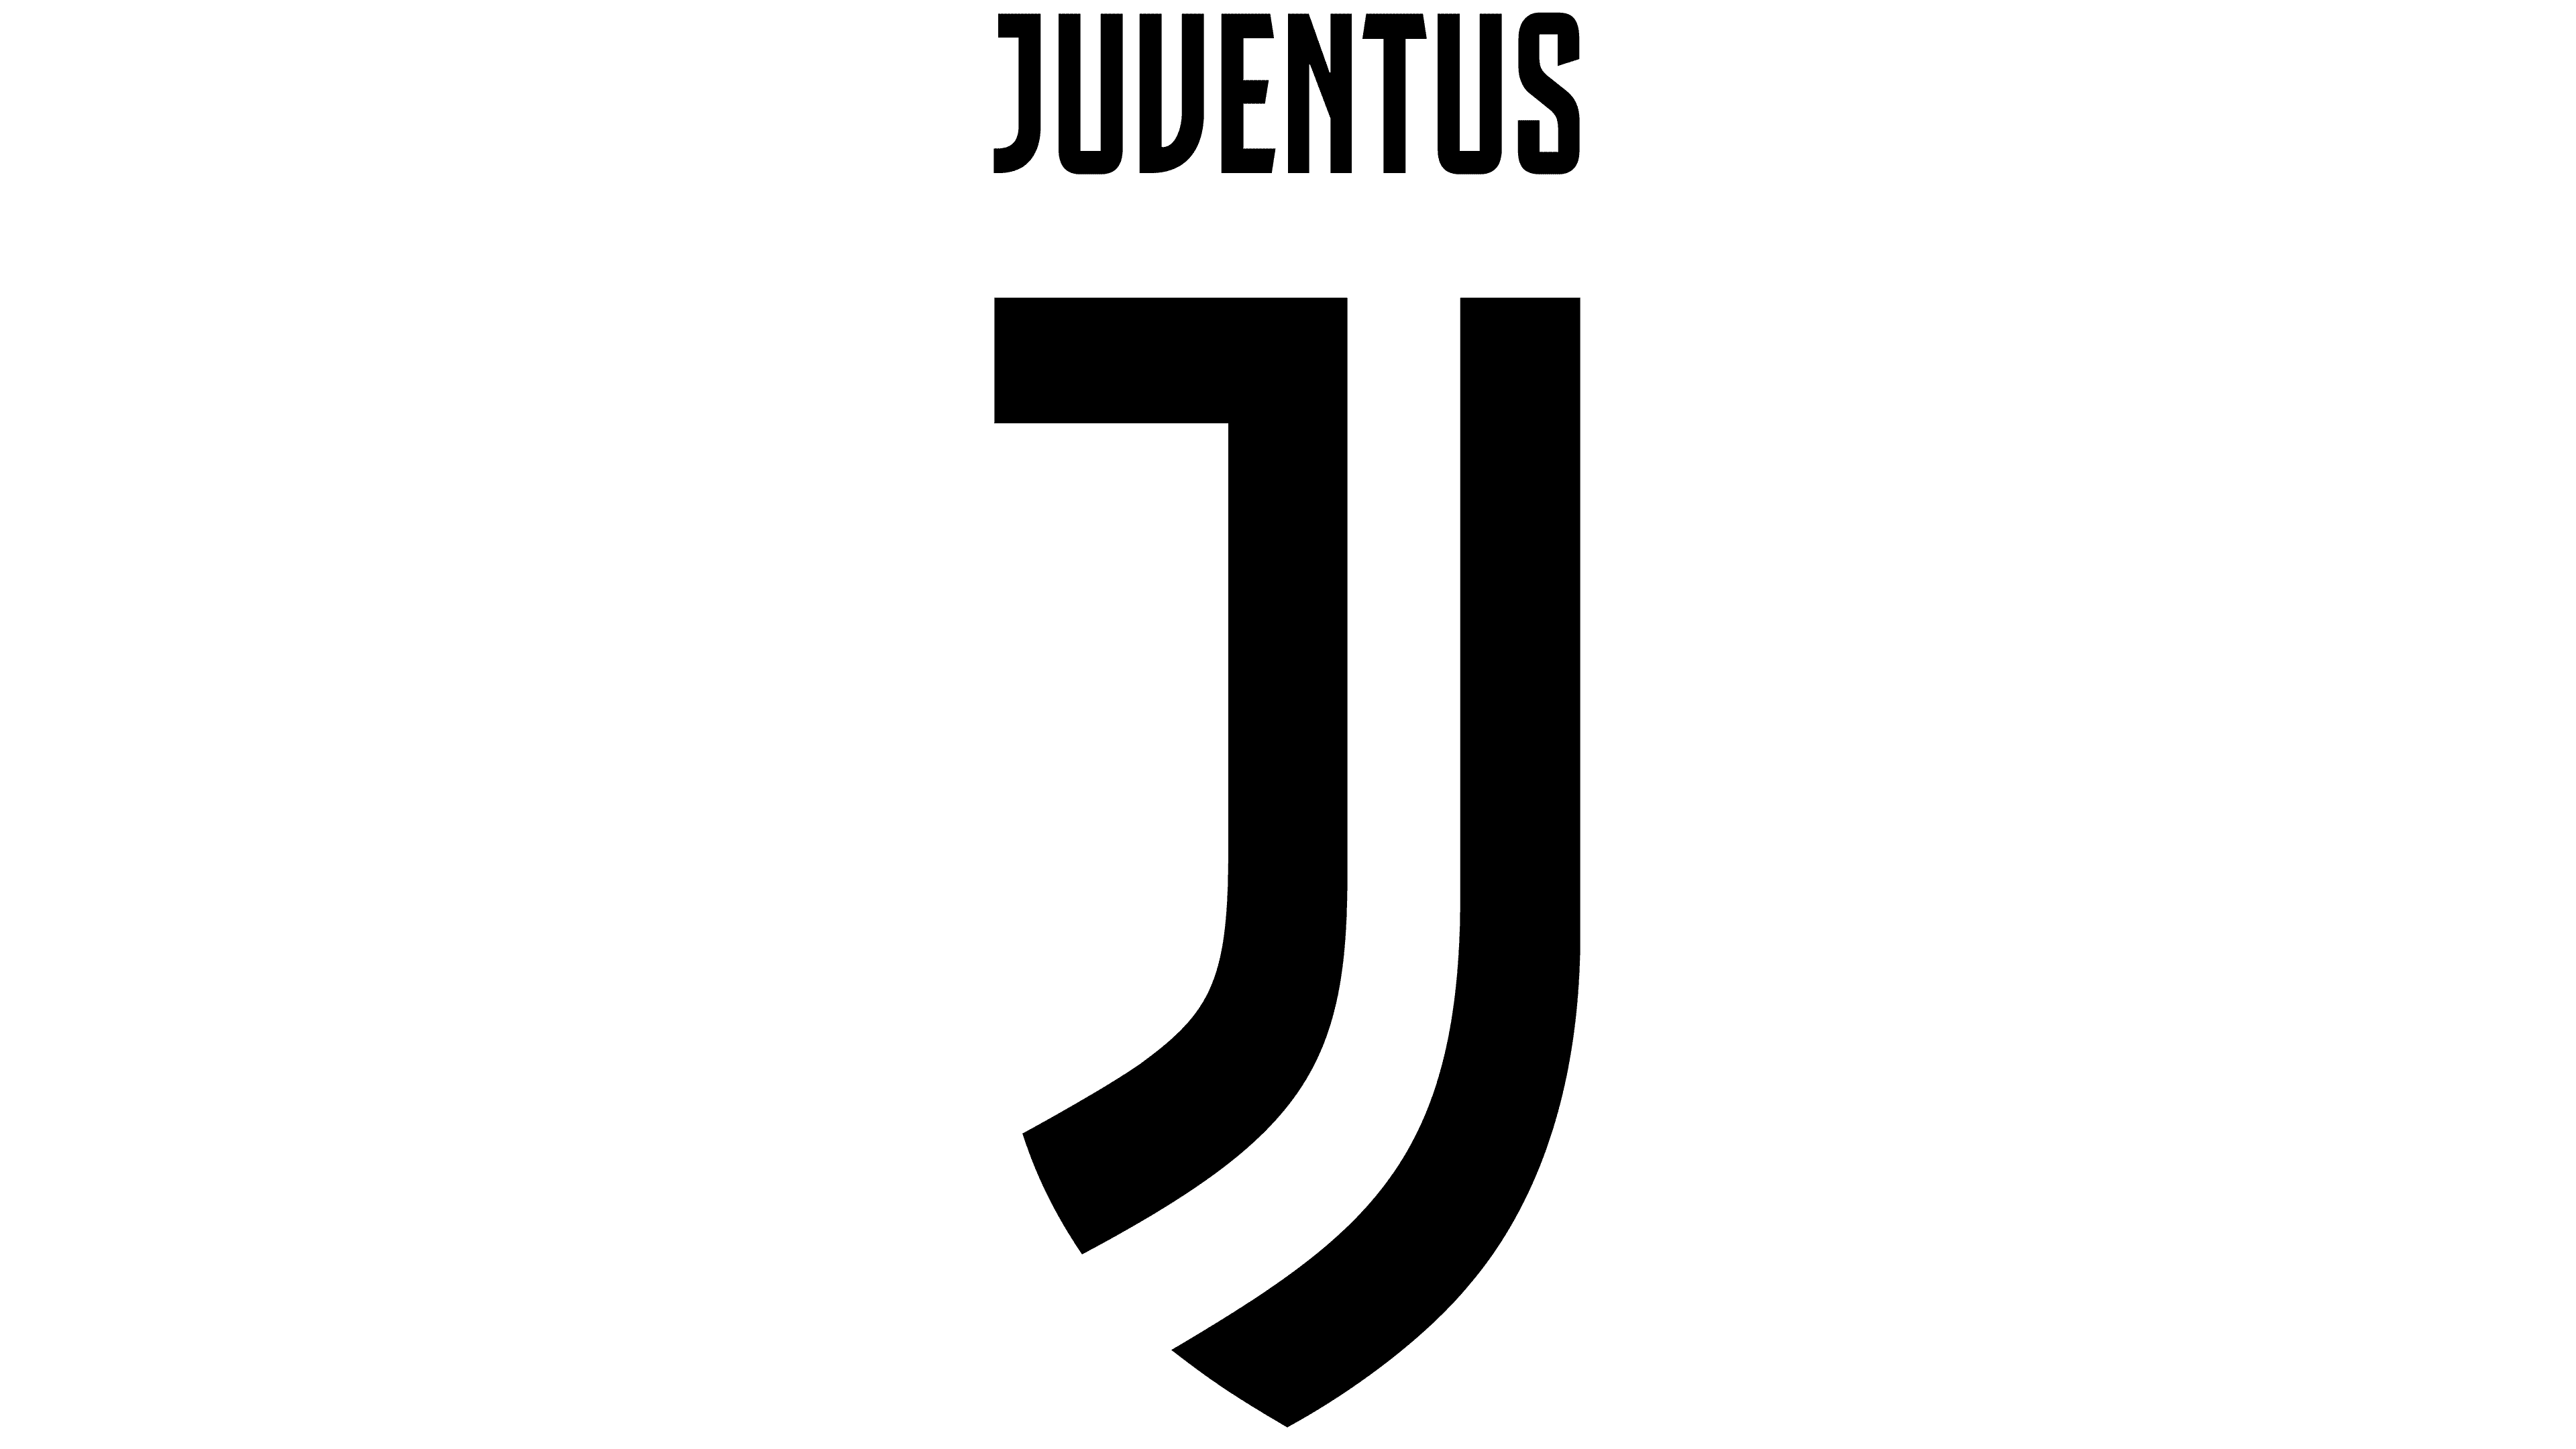 juventus logo the most famous brands and company logos in the world juventus logo the most famous brands